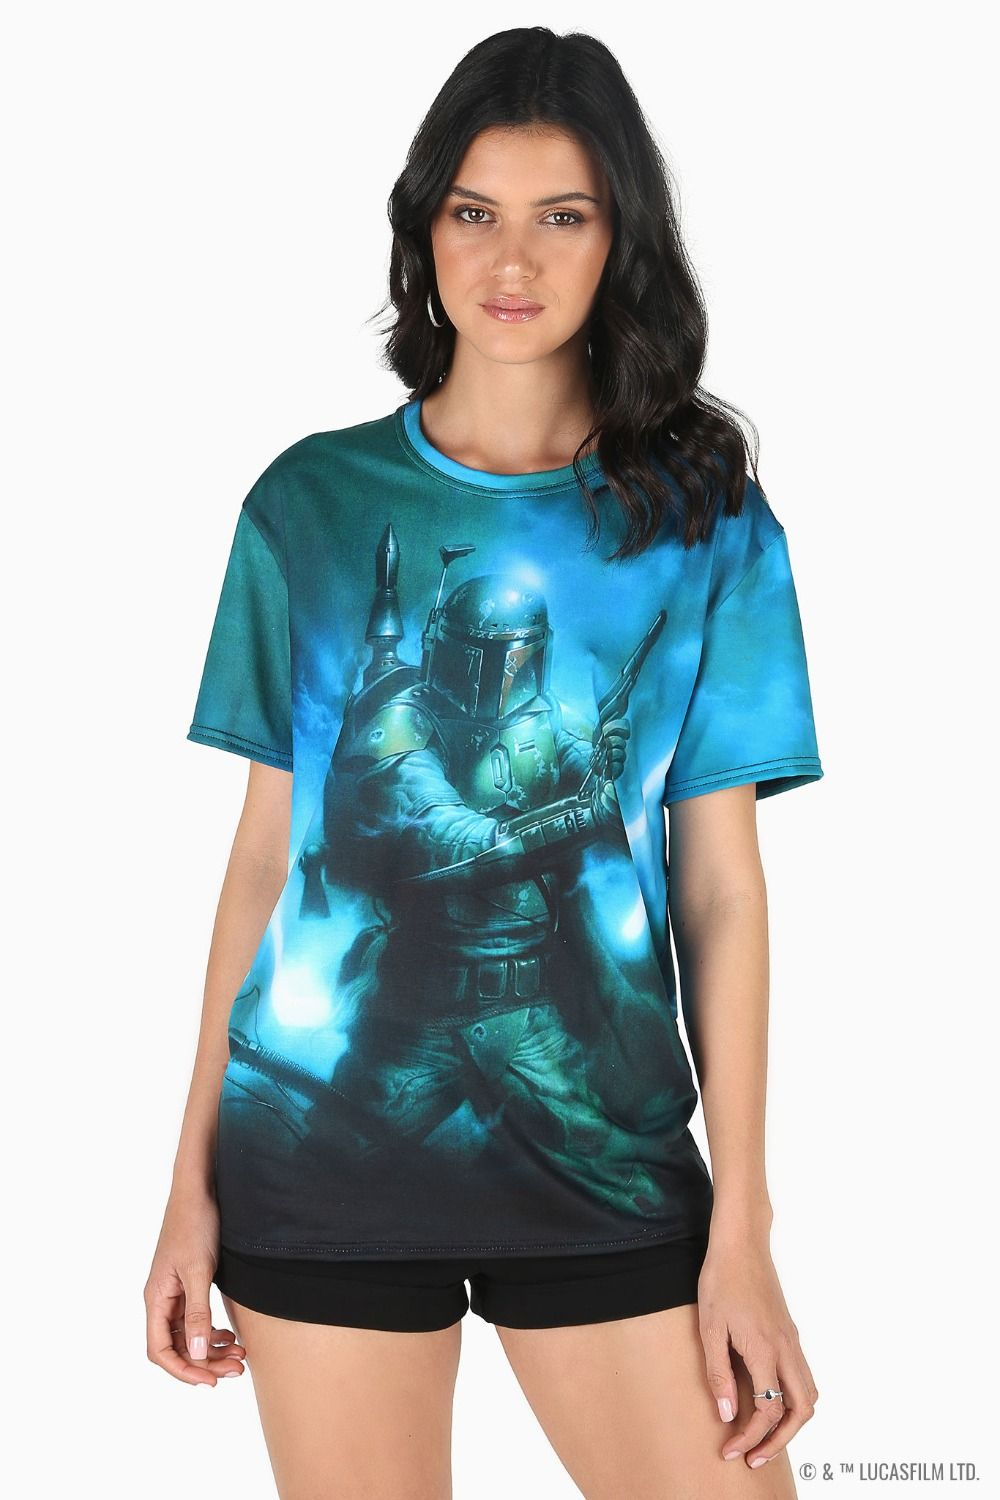 Black Milk Clothing x Star Wars Boba Fett BFT T-Shirt